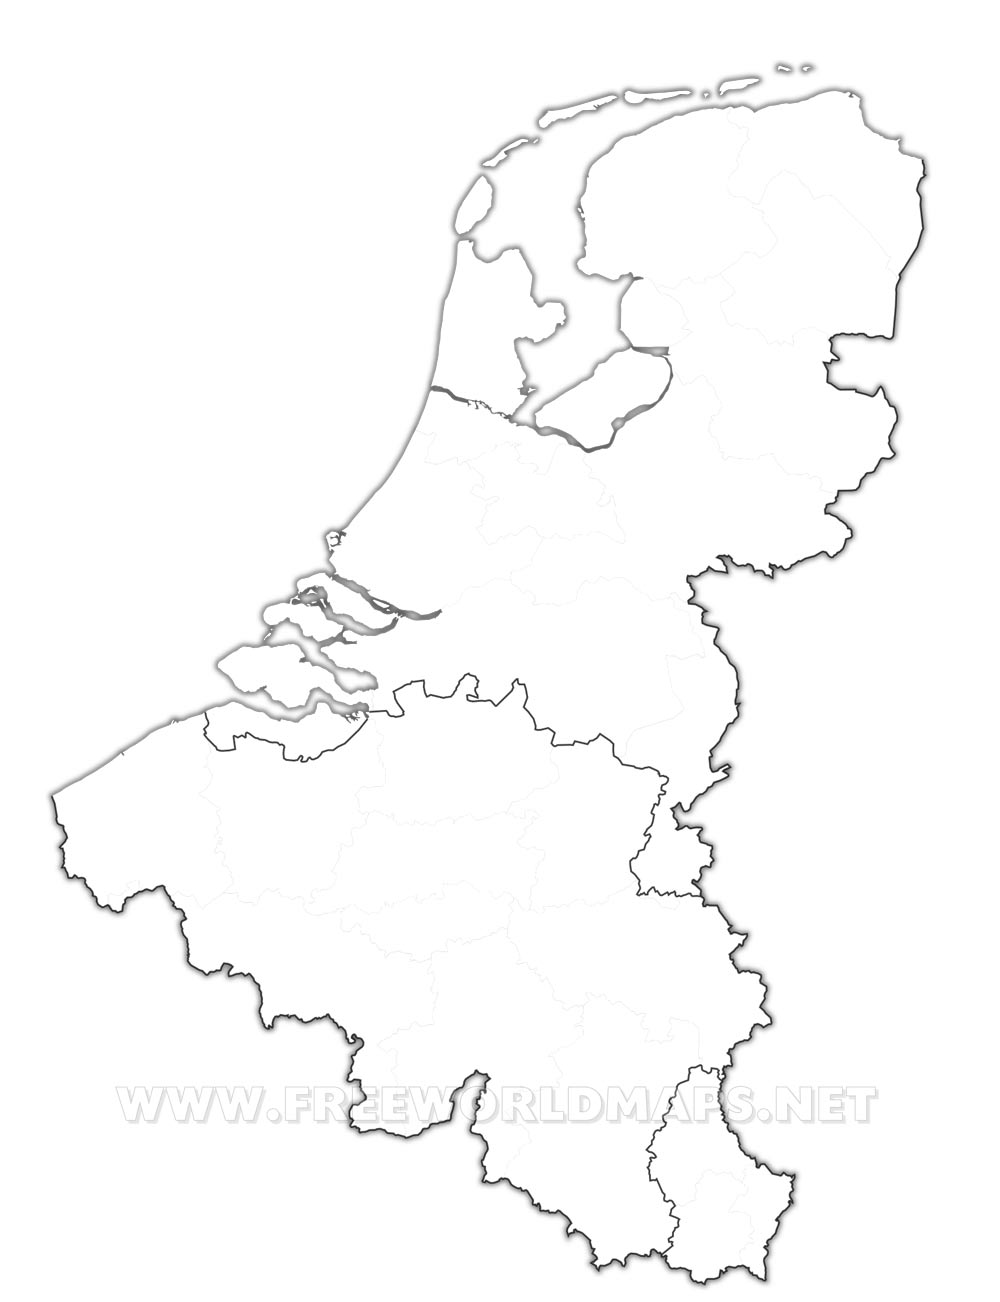 Germany Interactive Map as well Blank United States Map Quiz Printable besides Southamerica in addition Goyals Social Sciences Maps List Items aspx moreover Benelux. on us physical map of rivers